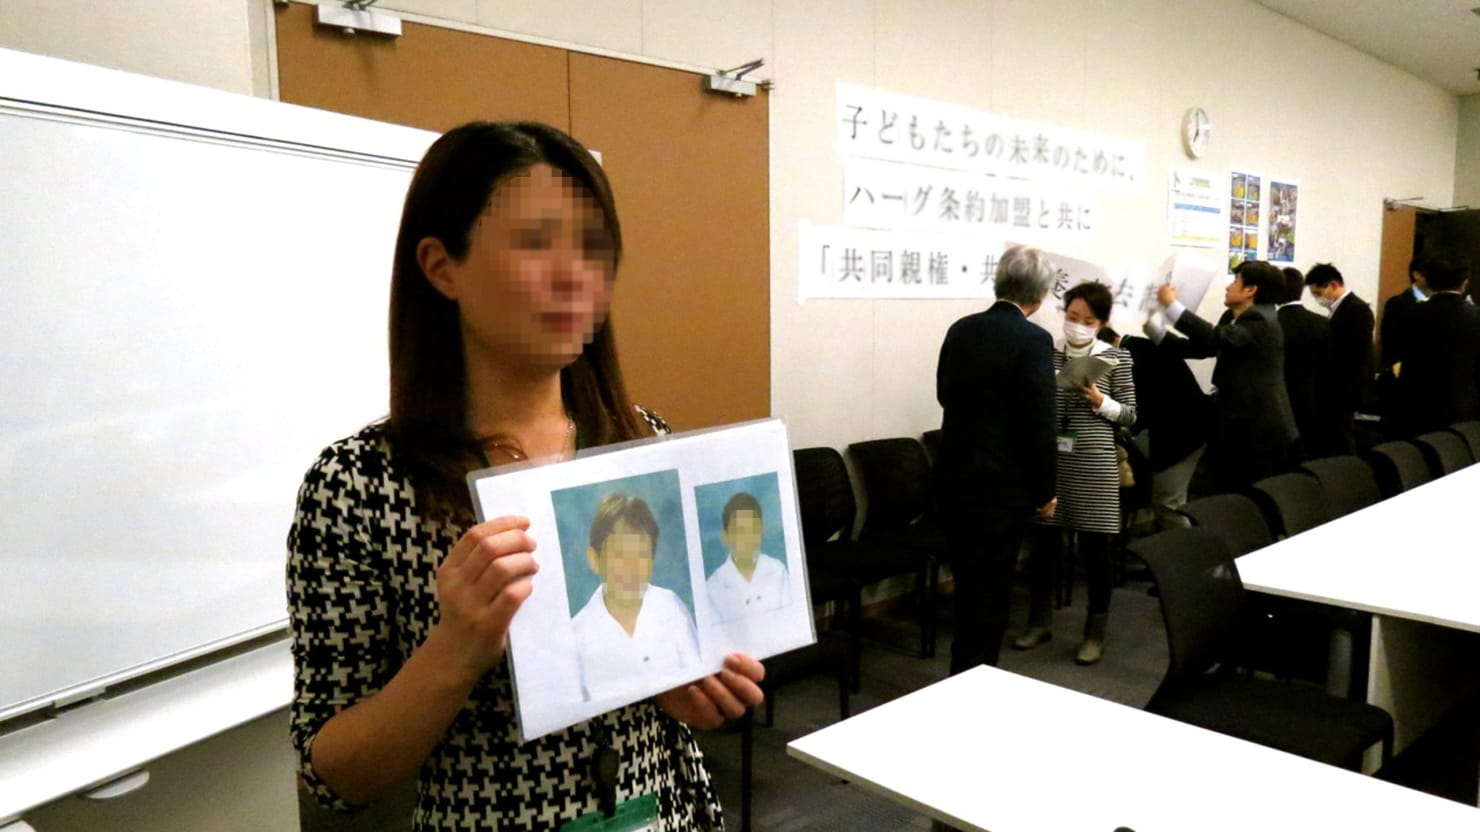 Japan's Child Kidnapping Problem